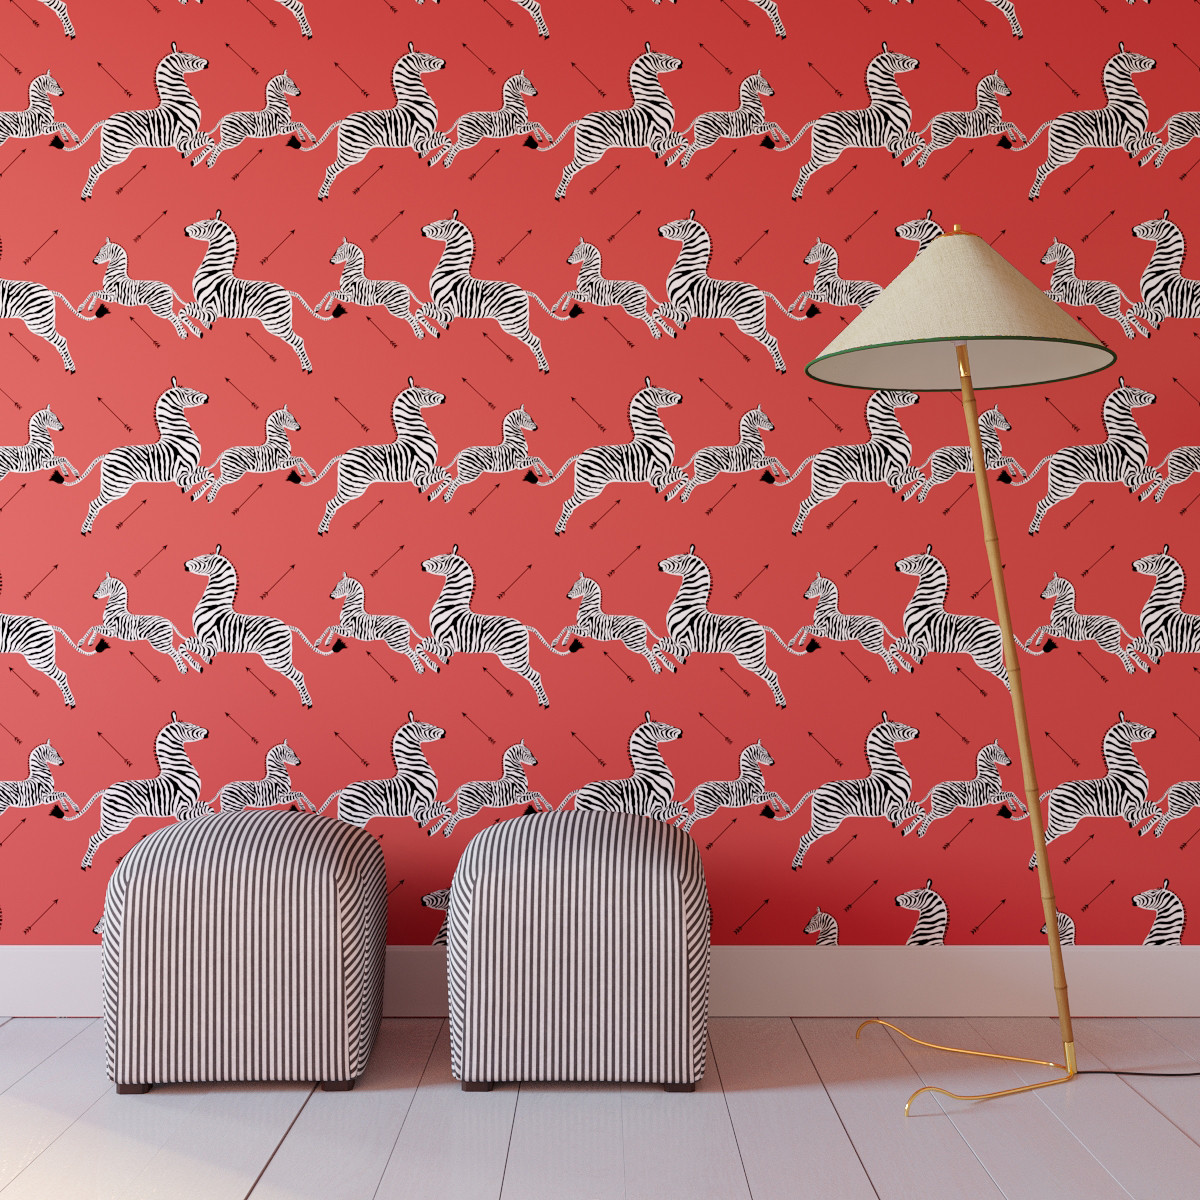 These Removable Wallpapers Are the Best No-Risk, High-Reward Design